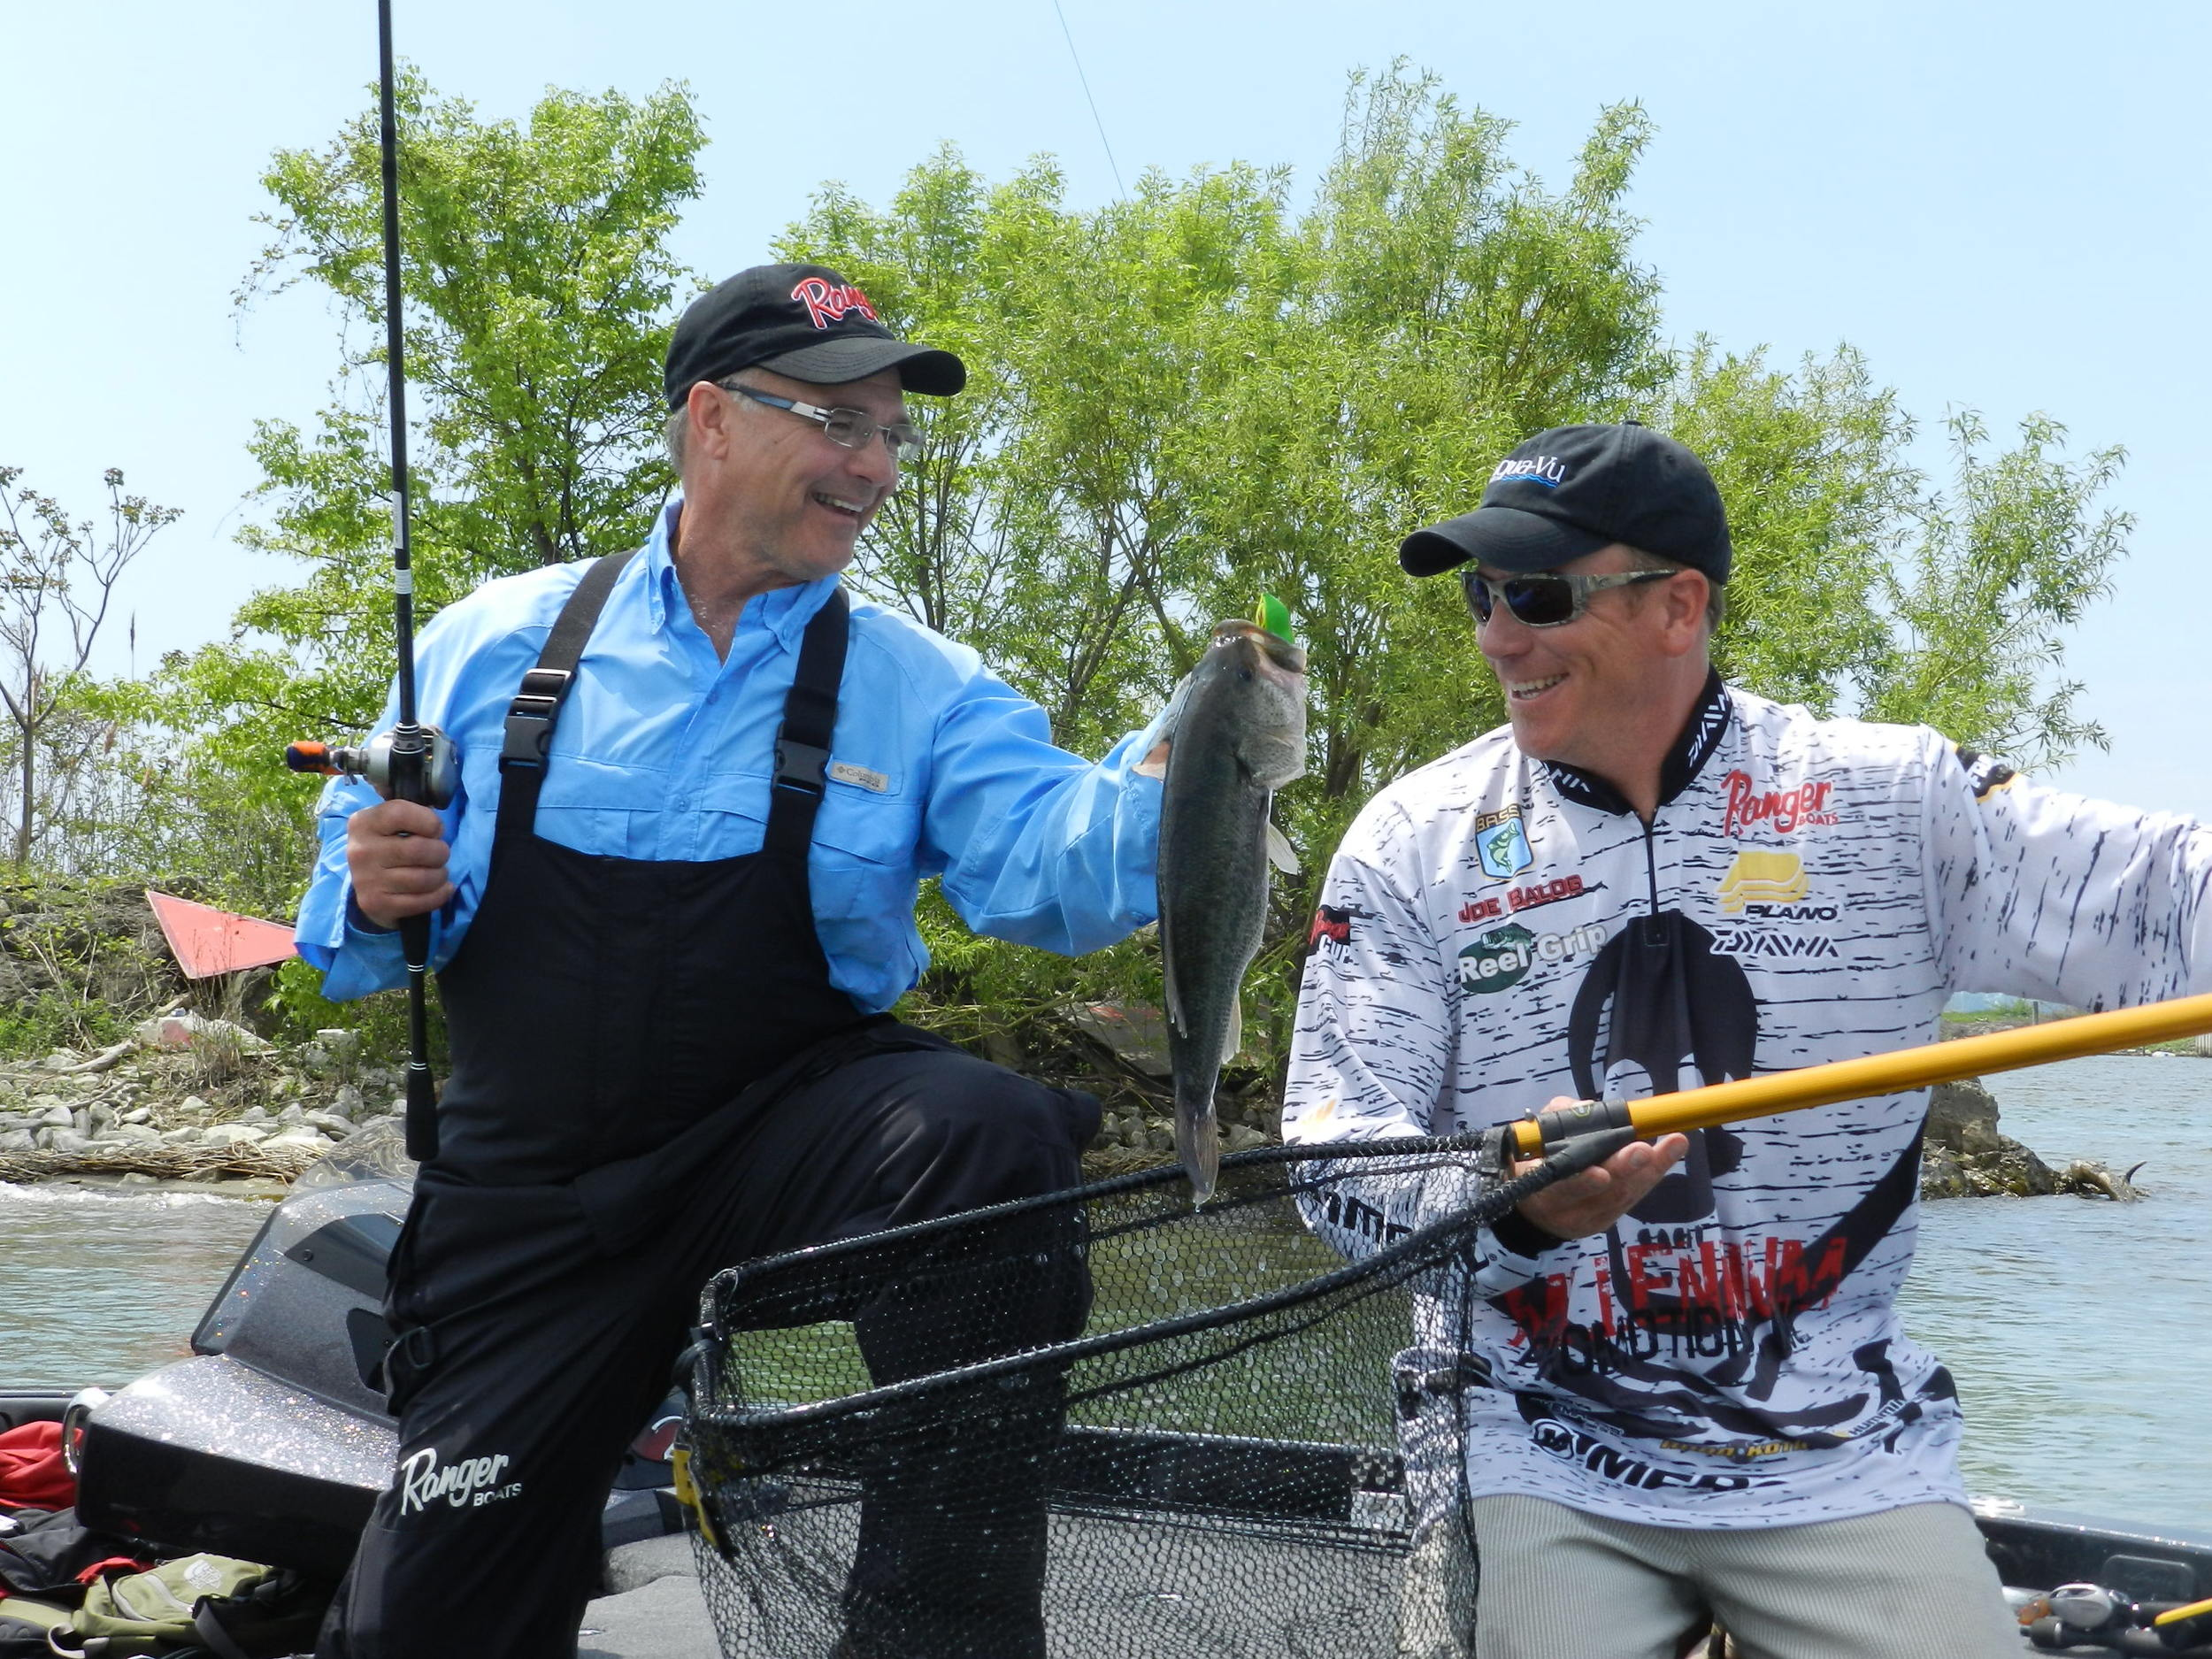 A day on the water with outdoor writer Mike Pehanich